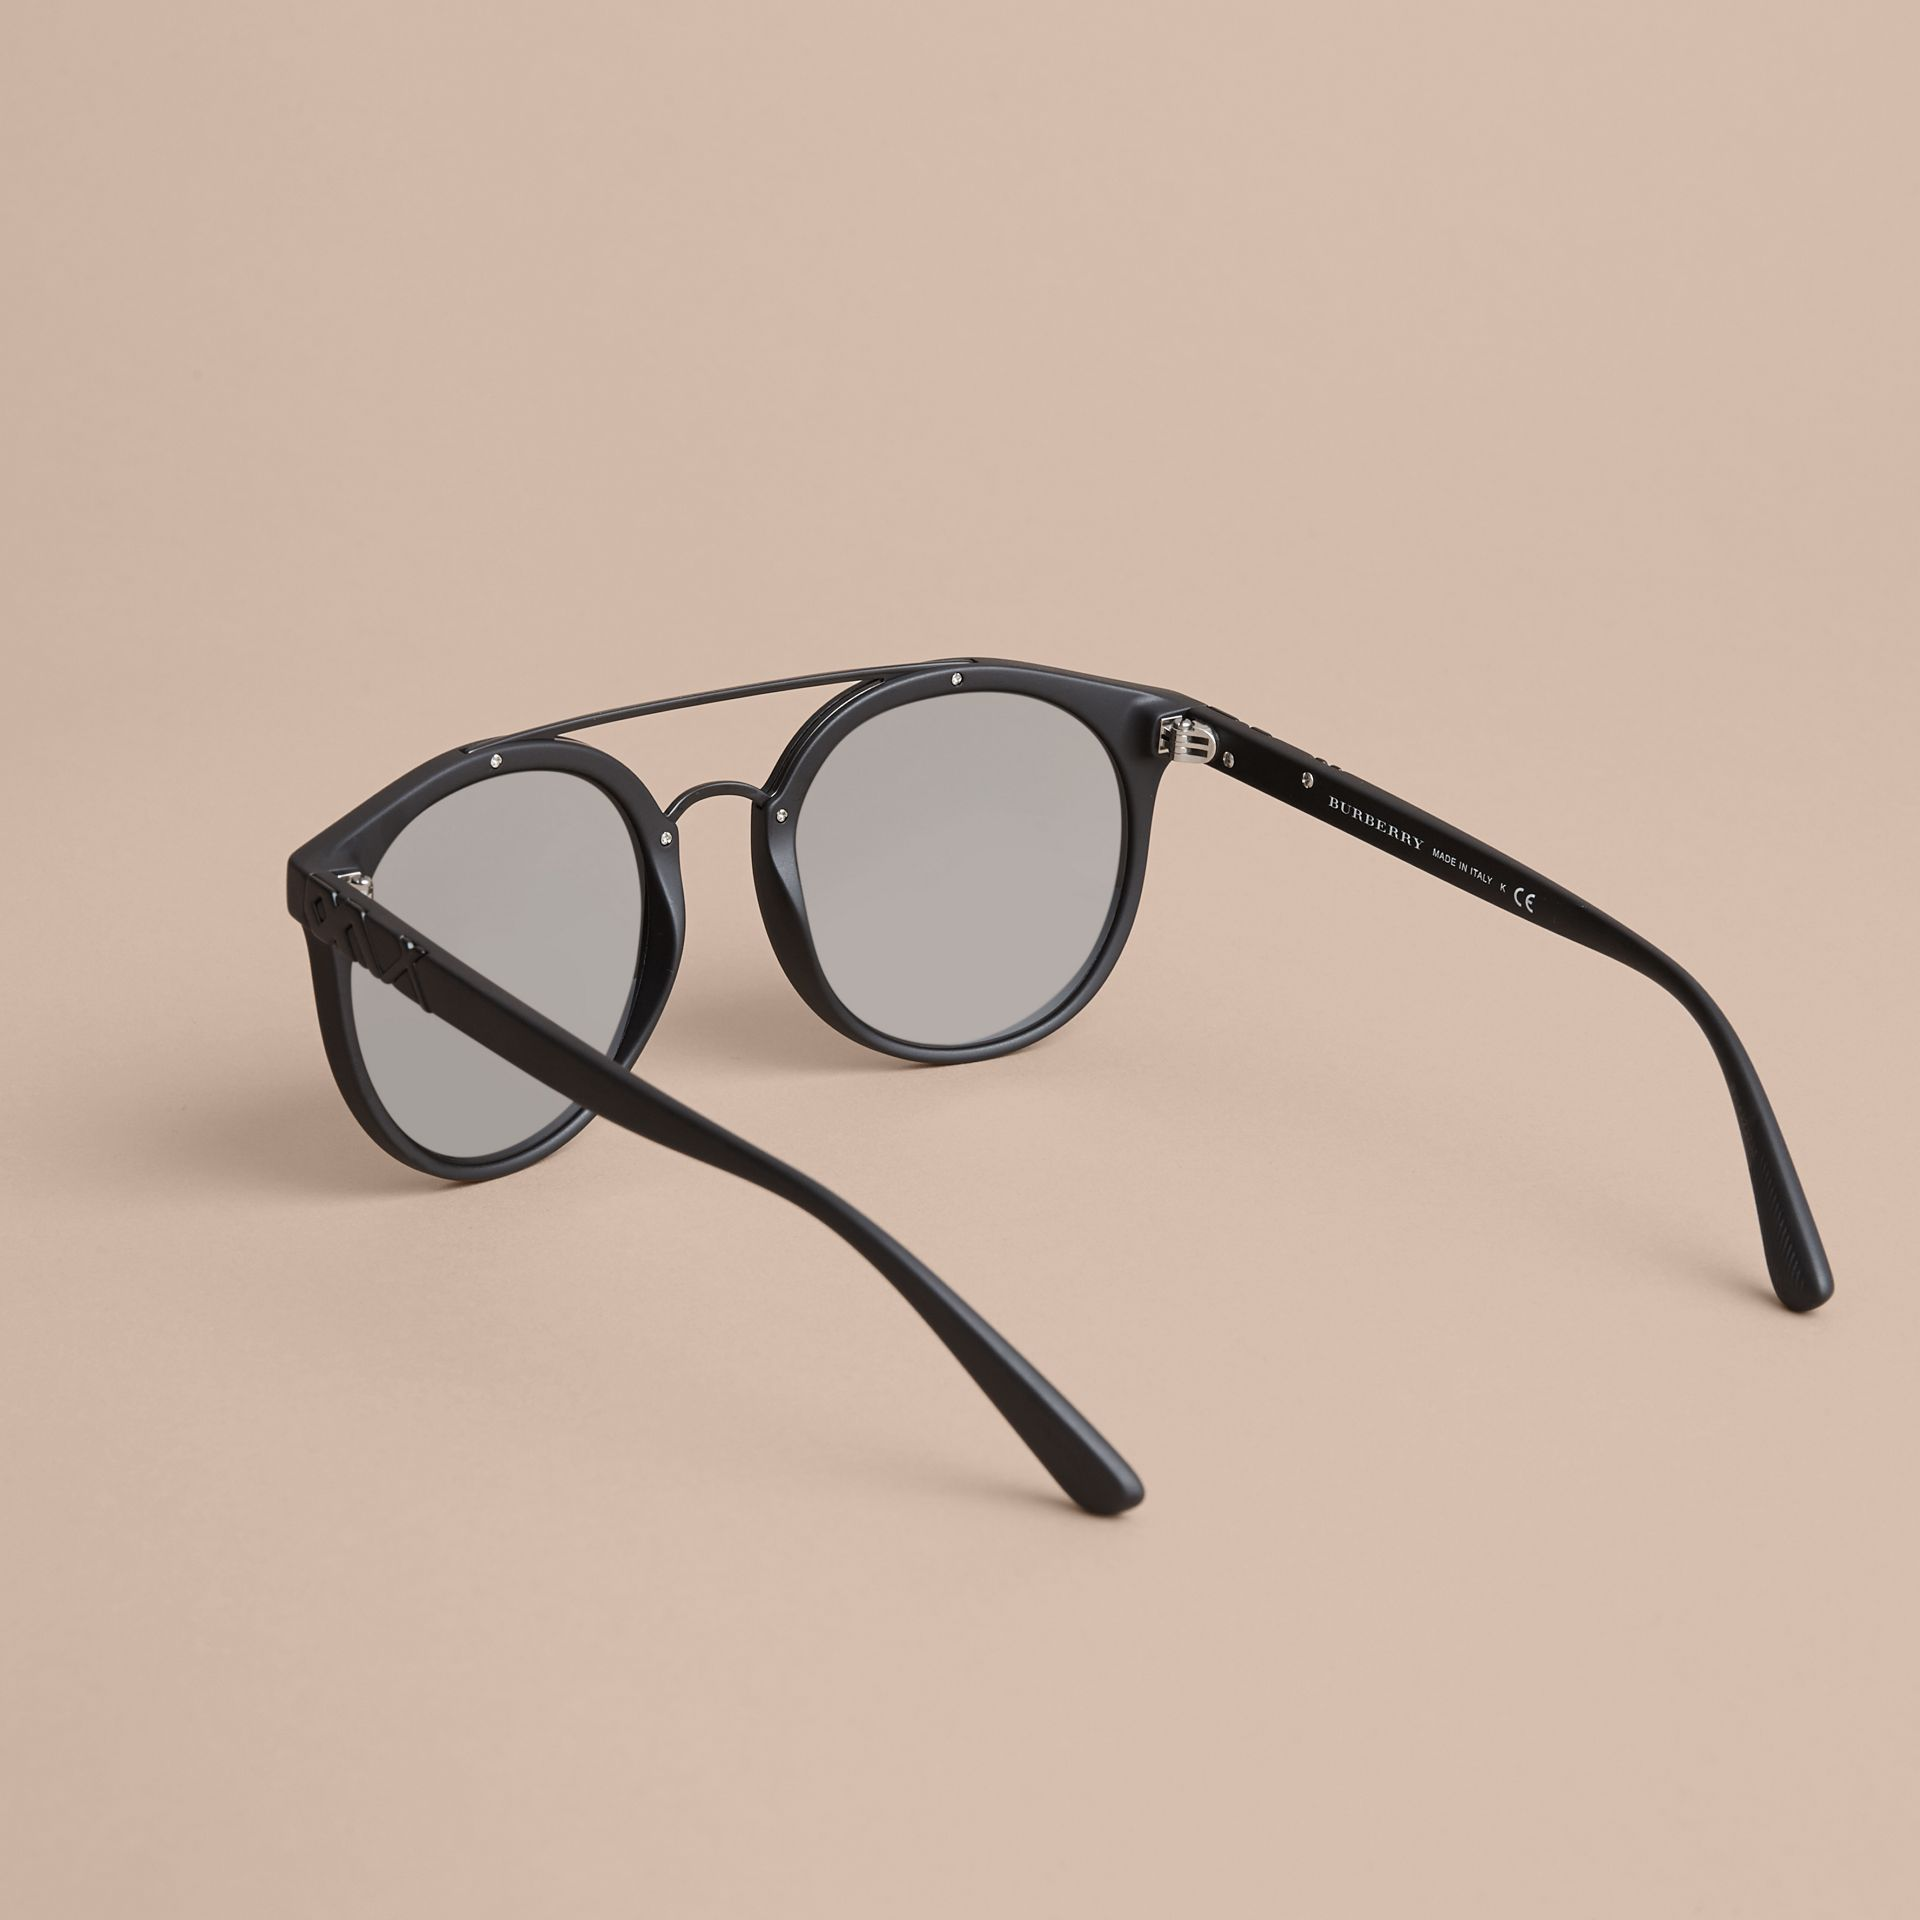 Top Bar Round Frame Sunglasses in Black - Men | Burberry - gallery image 3